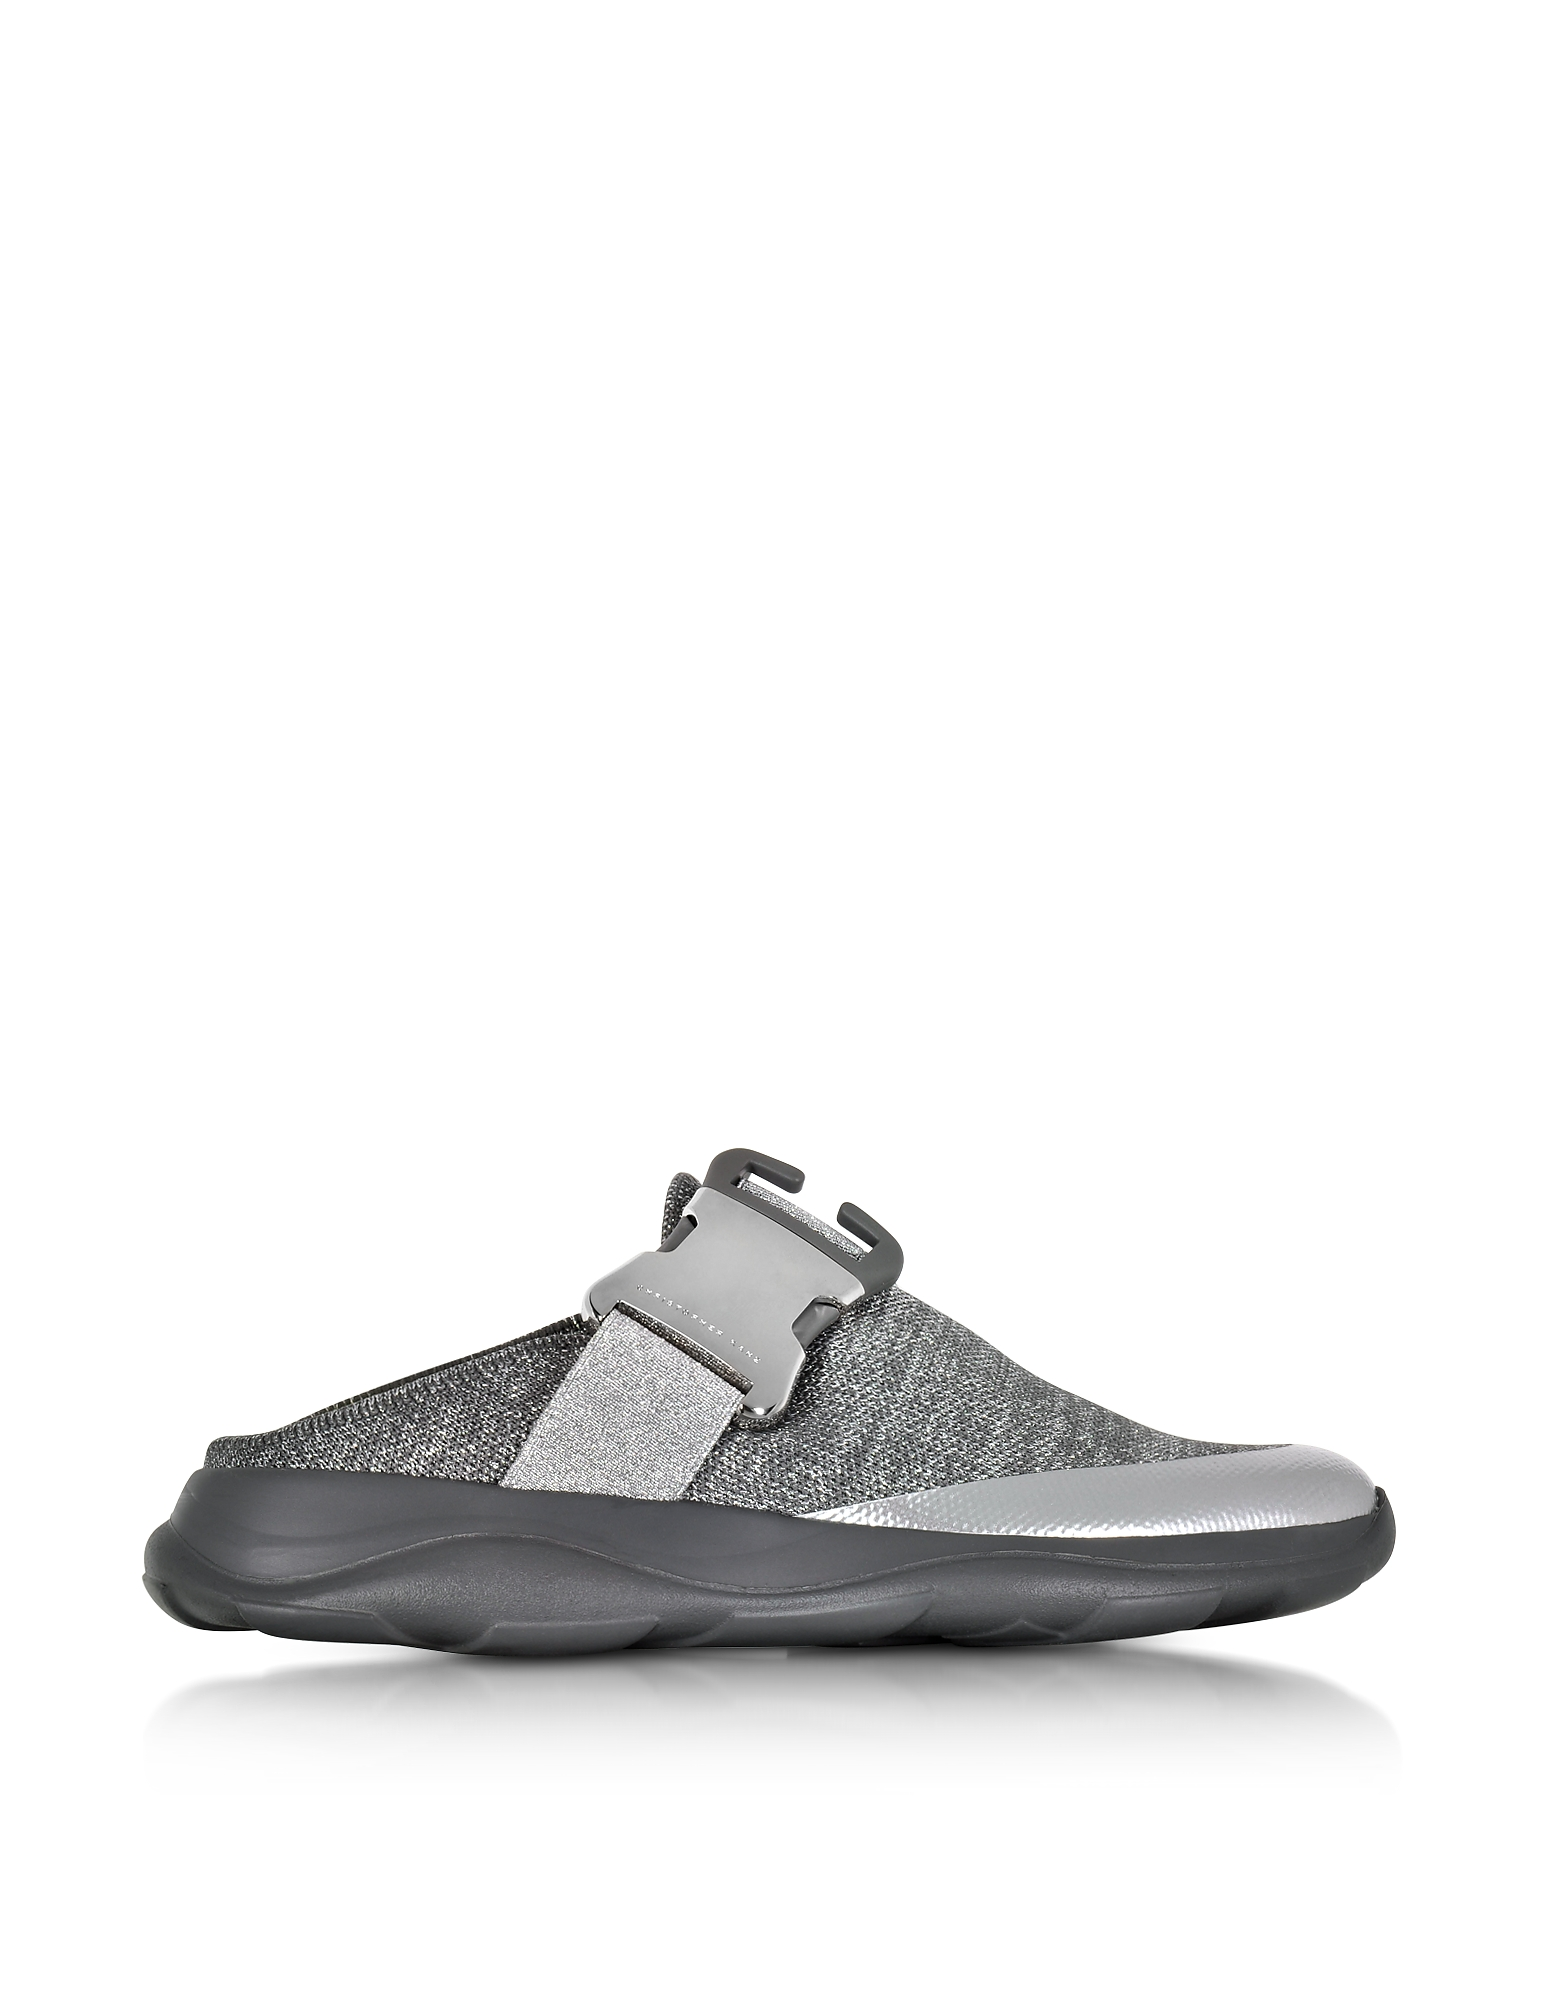 Christopher Kane Shoes, Tonal Grey & Silver Fabric Slide Sneaker